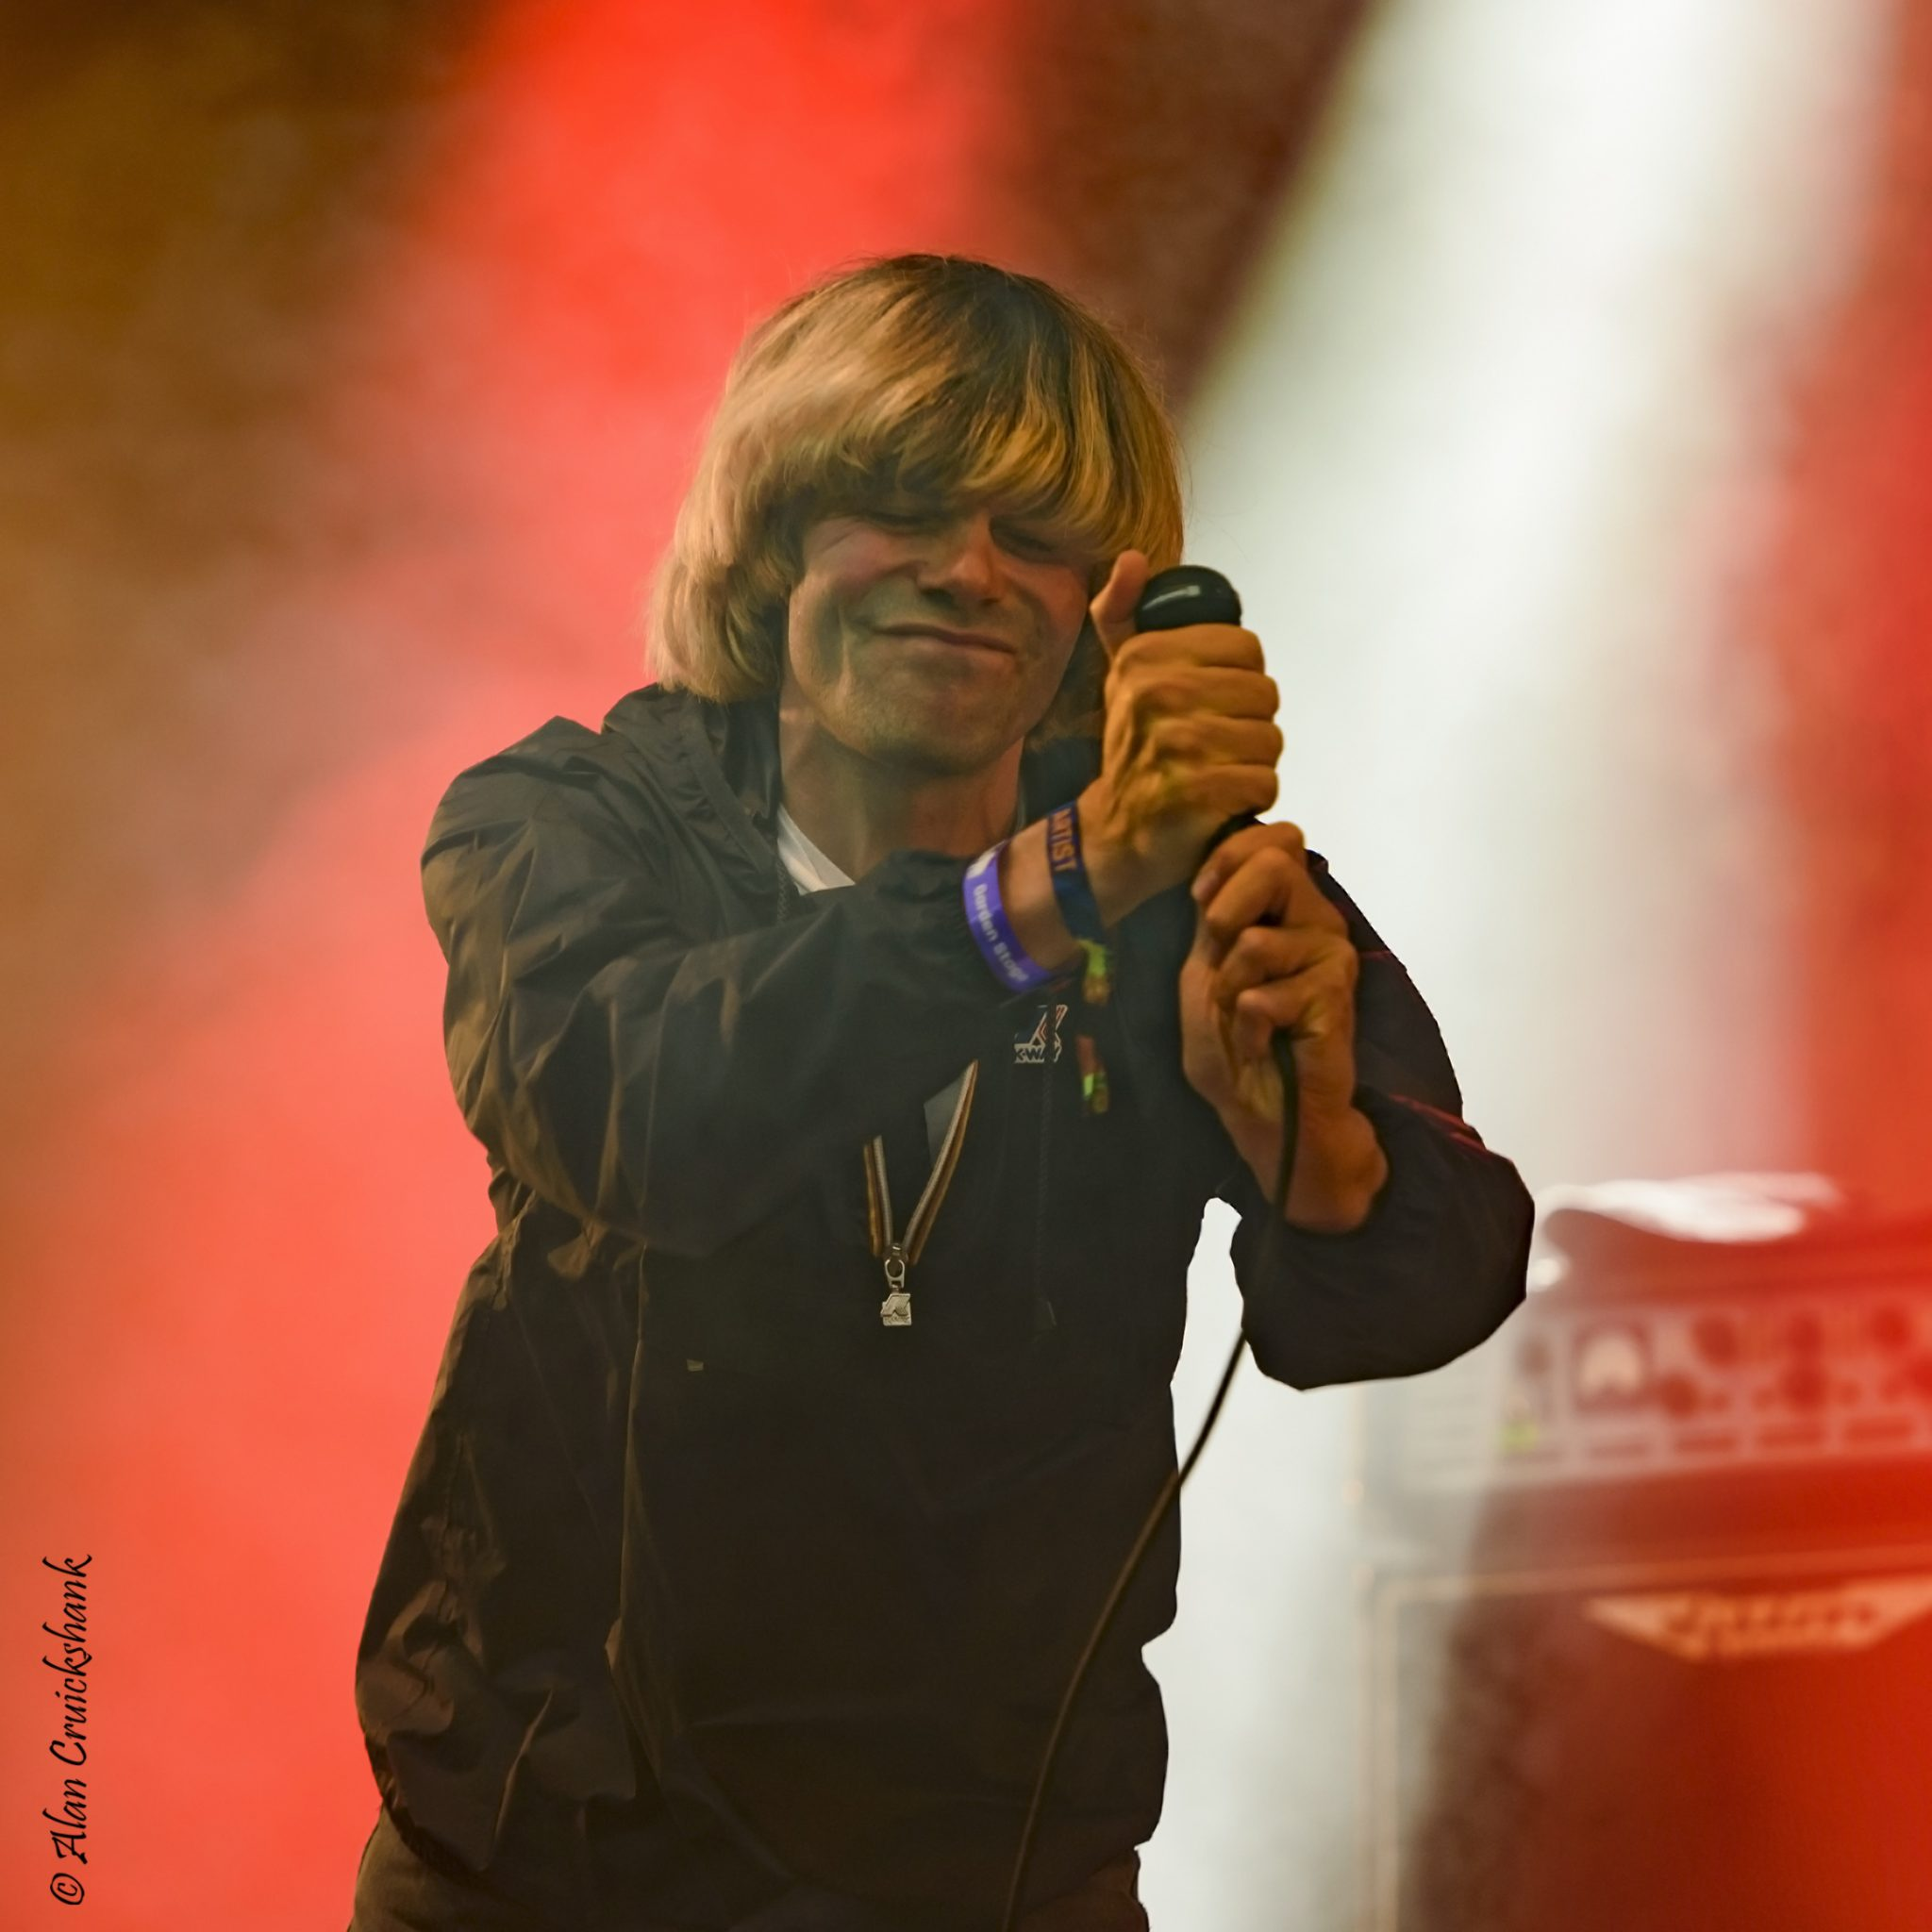 S18eC - The Charlatans, Friday Belladrum 2018 - IMAGES